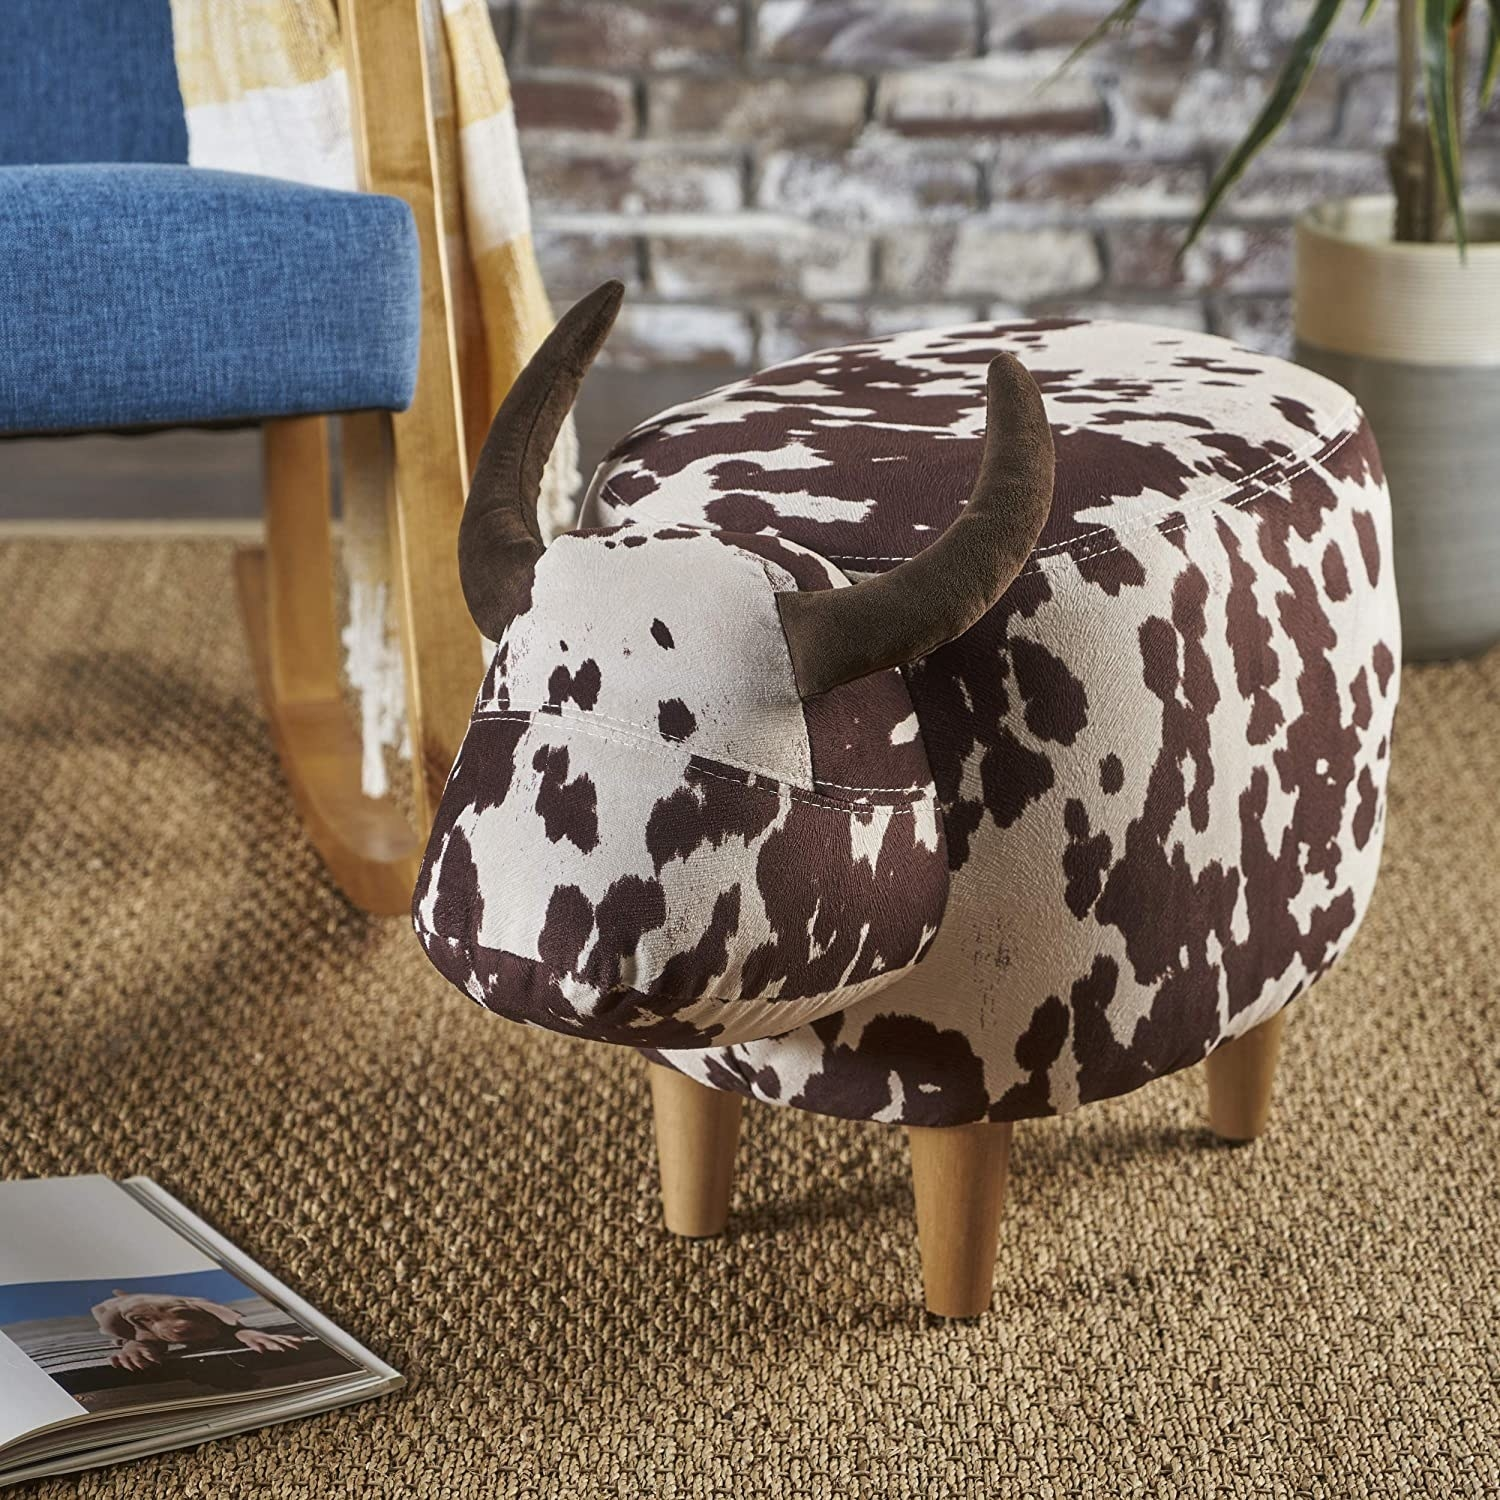 The ottoman which has brown and white cow print, two horns, and four legs